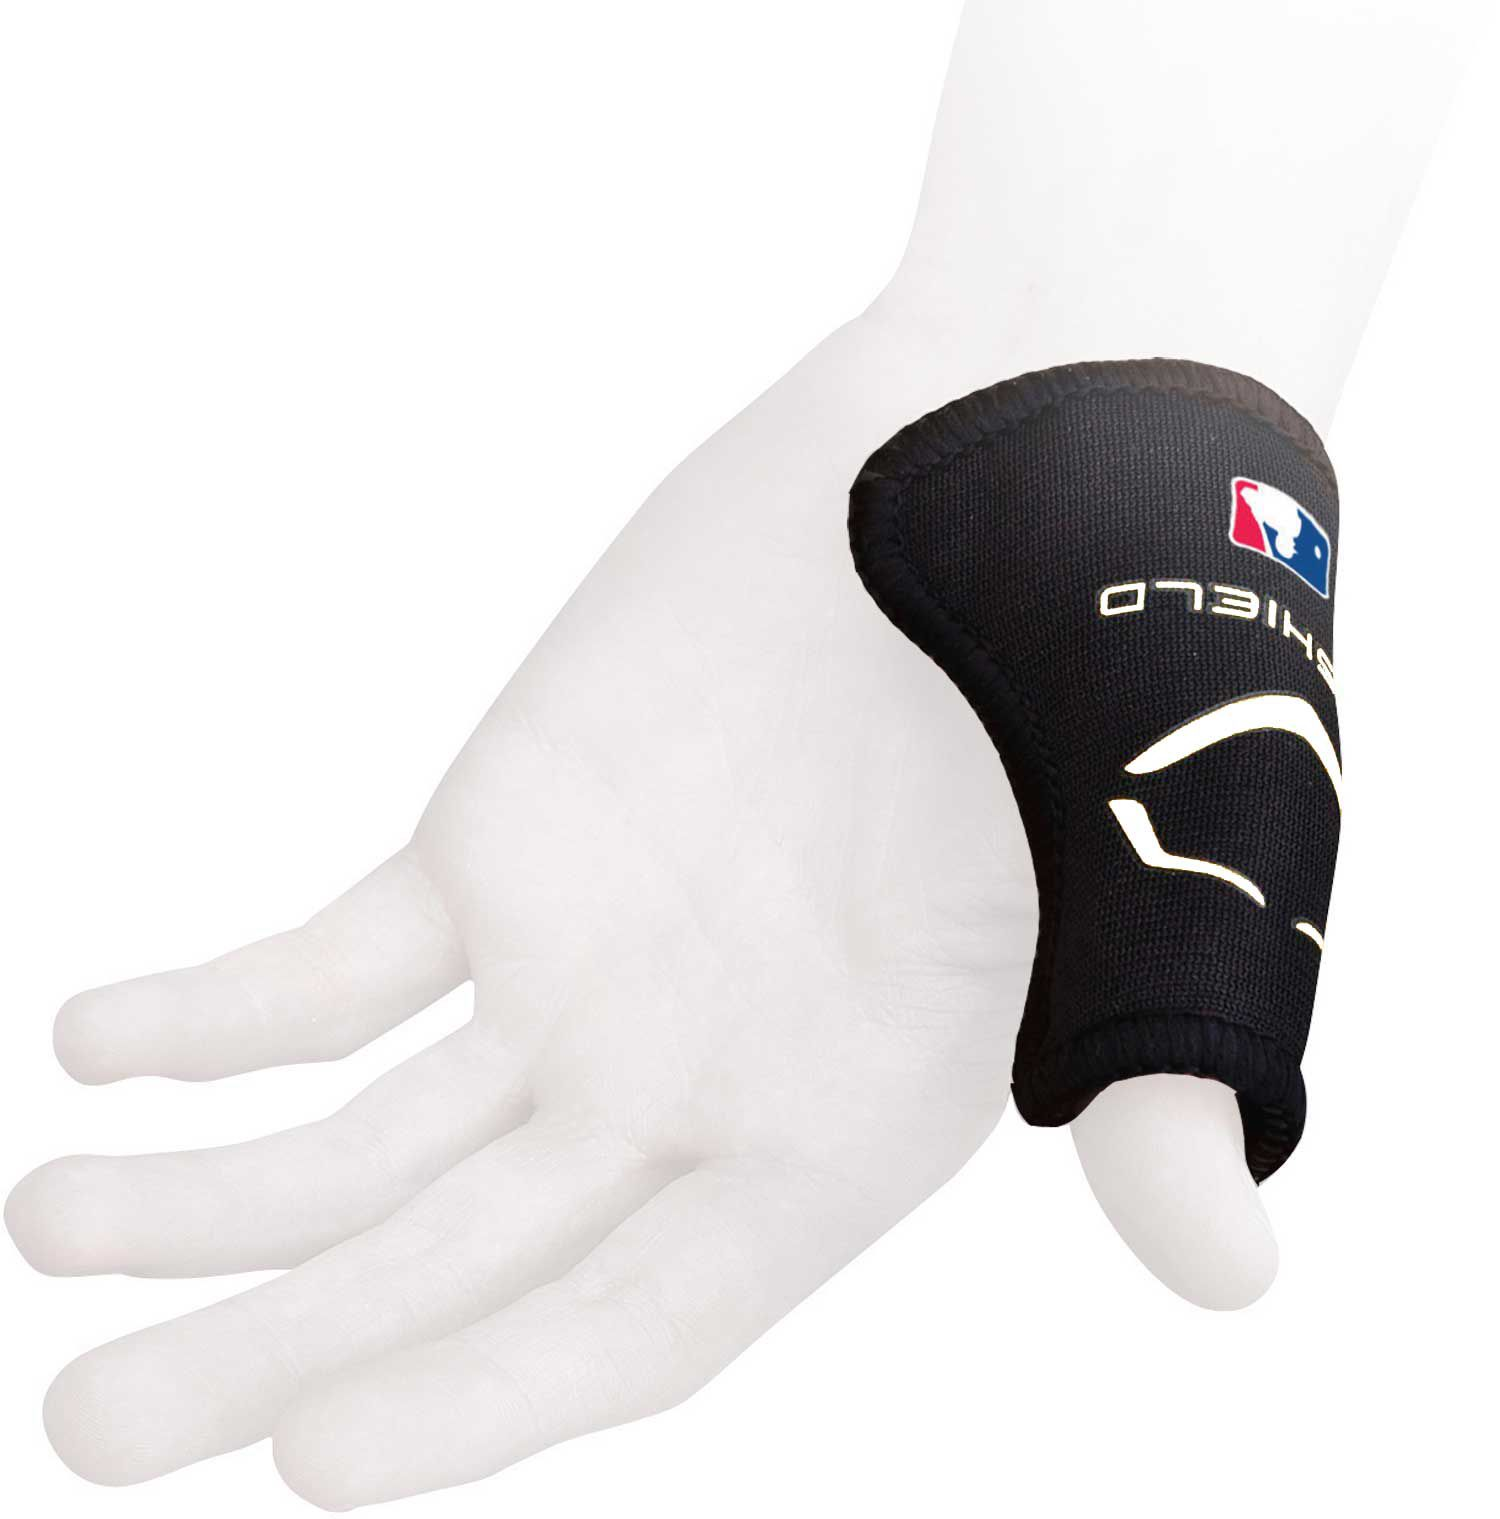 Evo Shield Catcher's Thumb Guard by Evo Shield